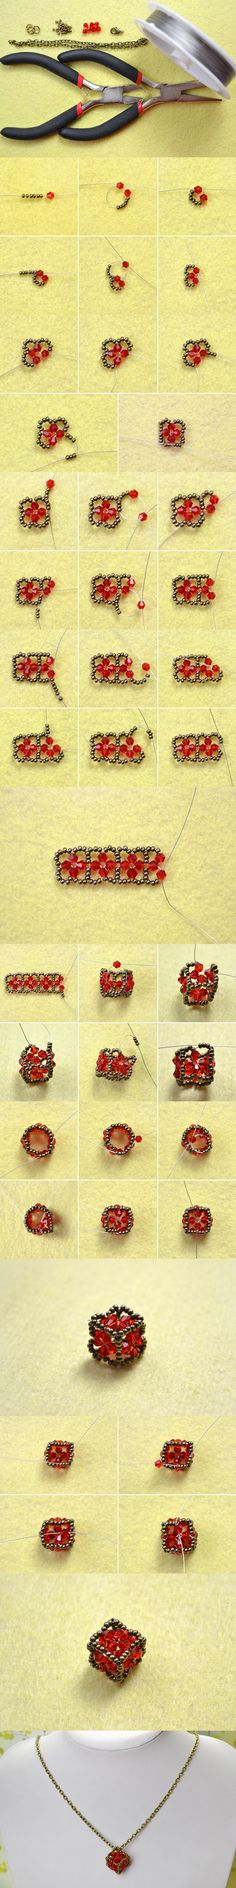 Tutorial on How to Make a Vintage Beaded Cube Pendant Necklace with Red Crystals from LC.Pandahall.com